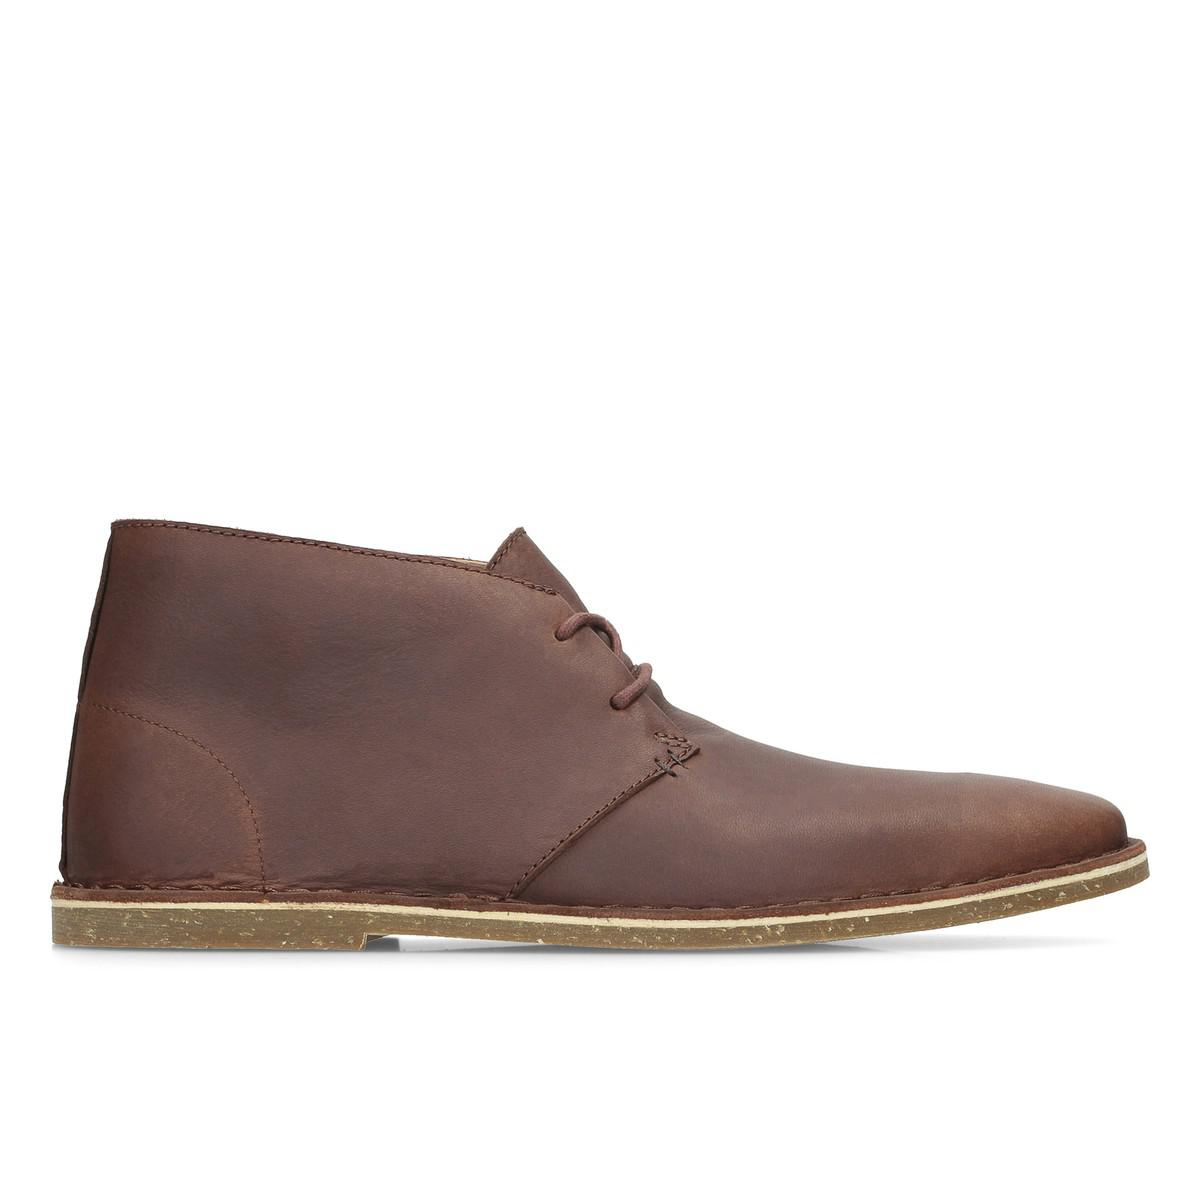 outlet discount sale outlet 2015 CLARKS Baltimore Leather Lace-Up Ankle Boots IVOkwJkWu